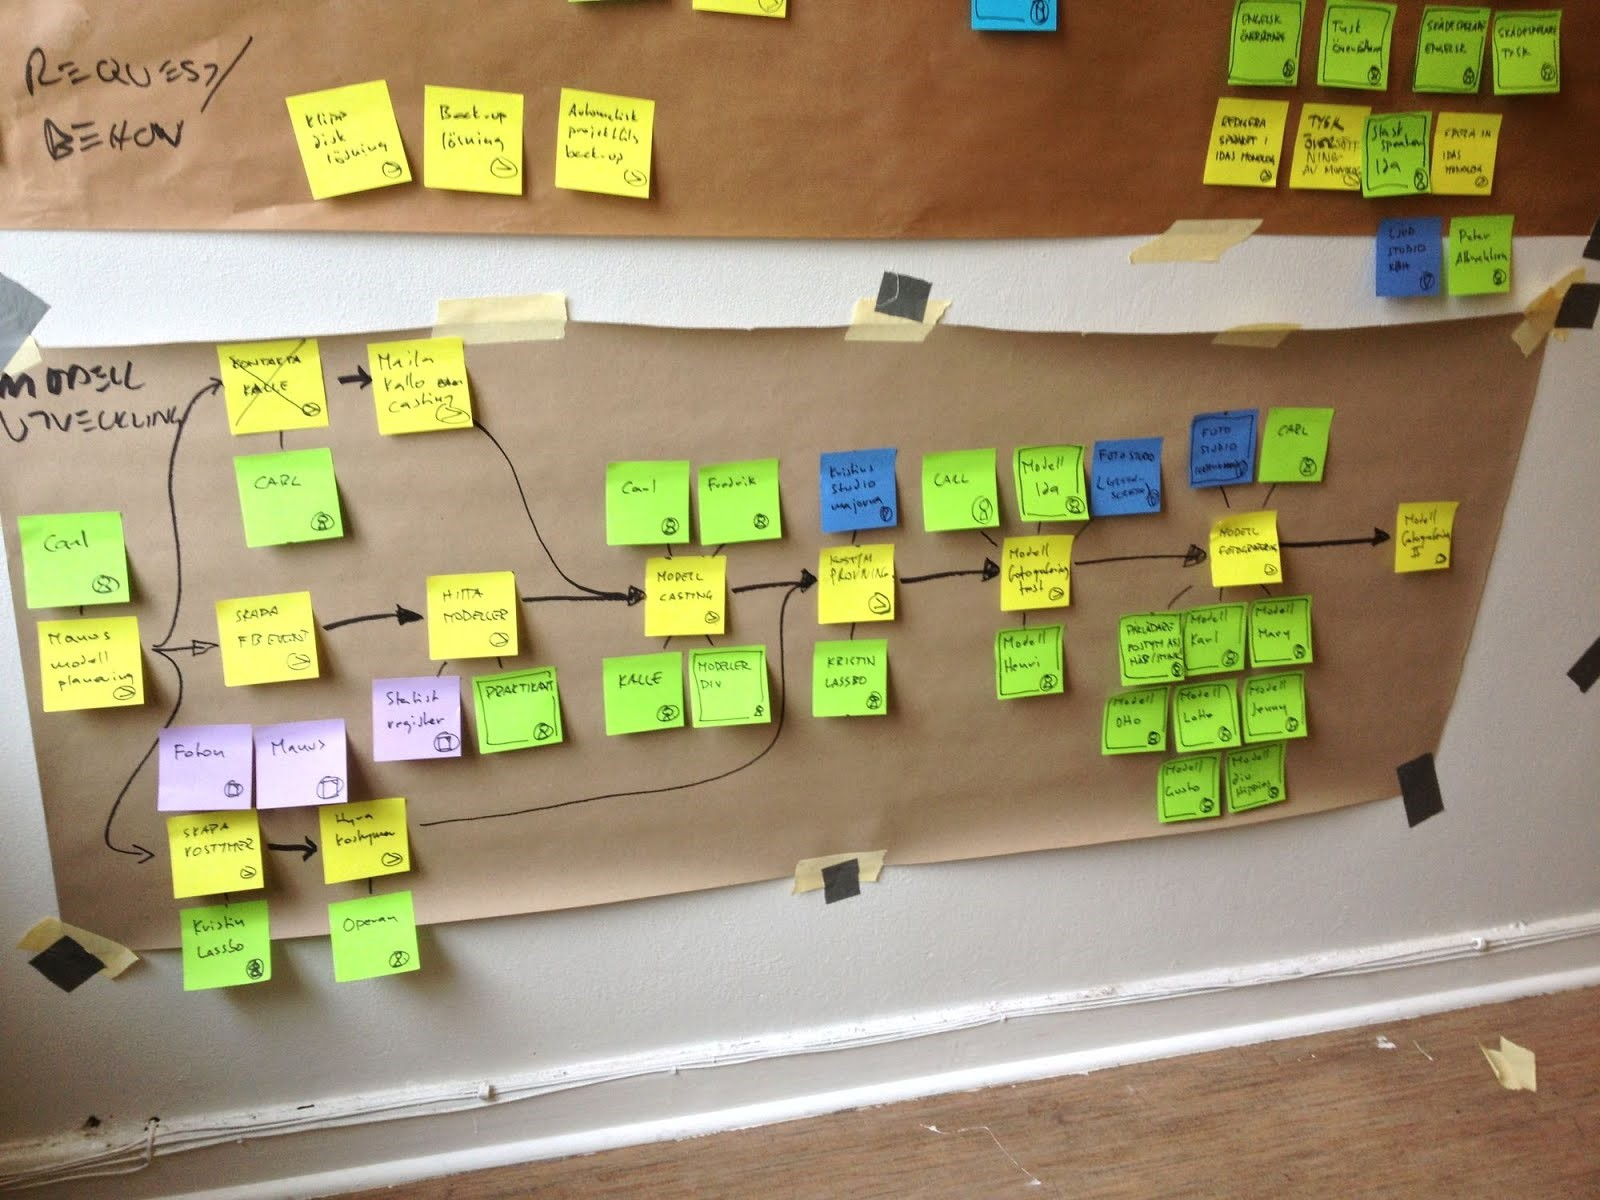 Visual Workflow Management using Post-it